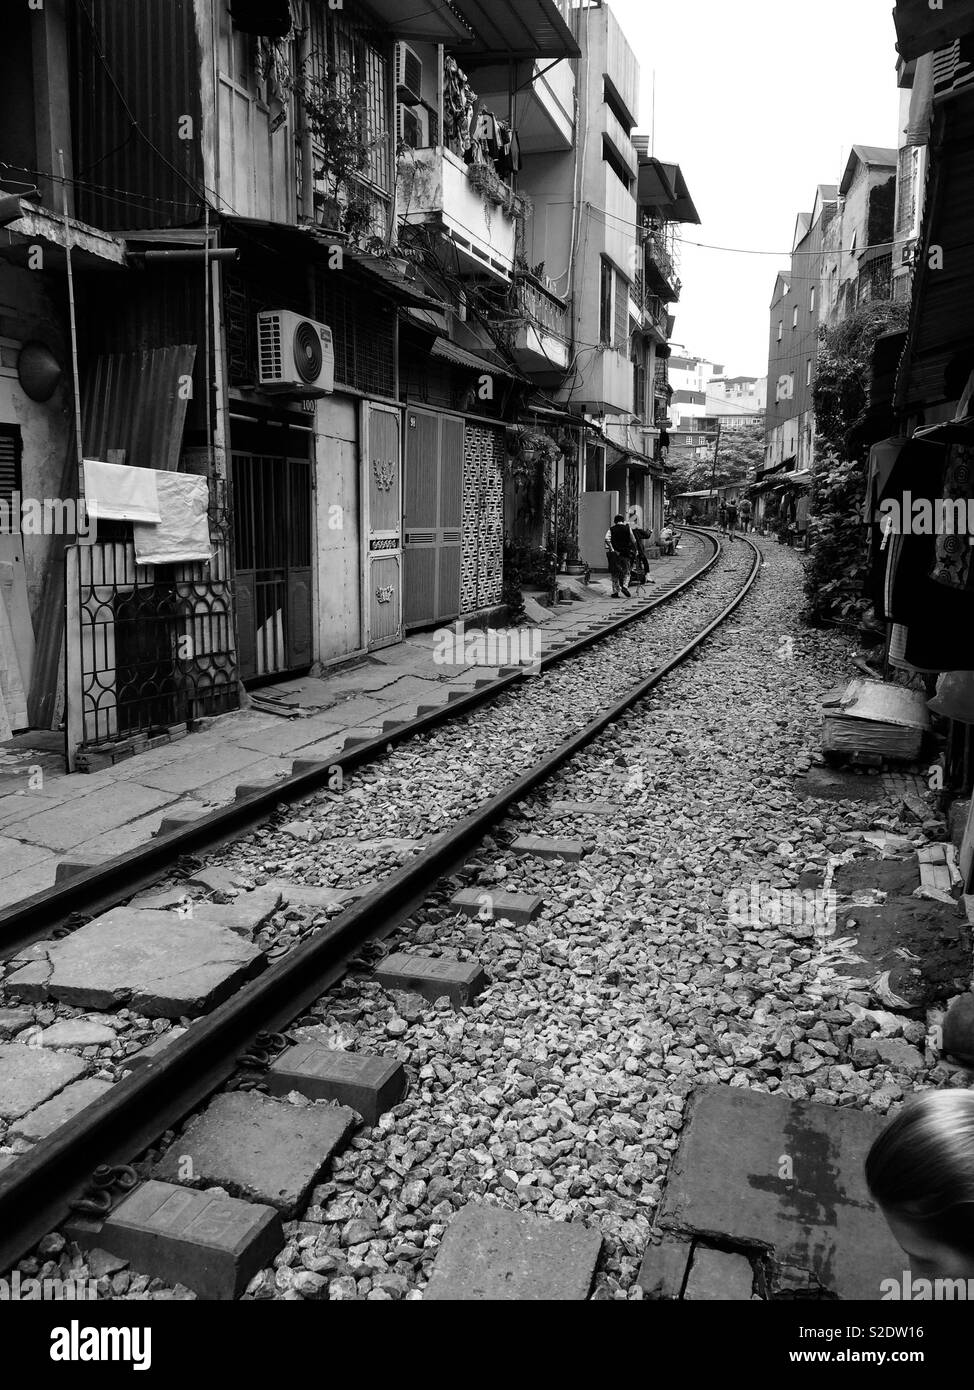 Train street in hanoi vietnam black and white photography